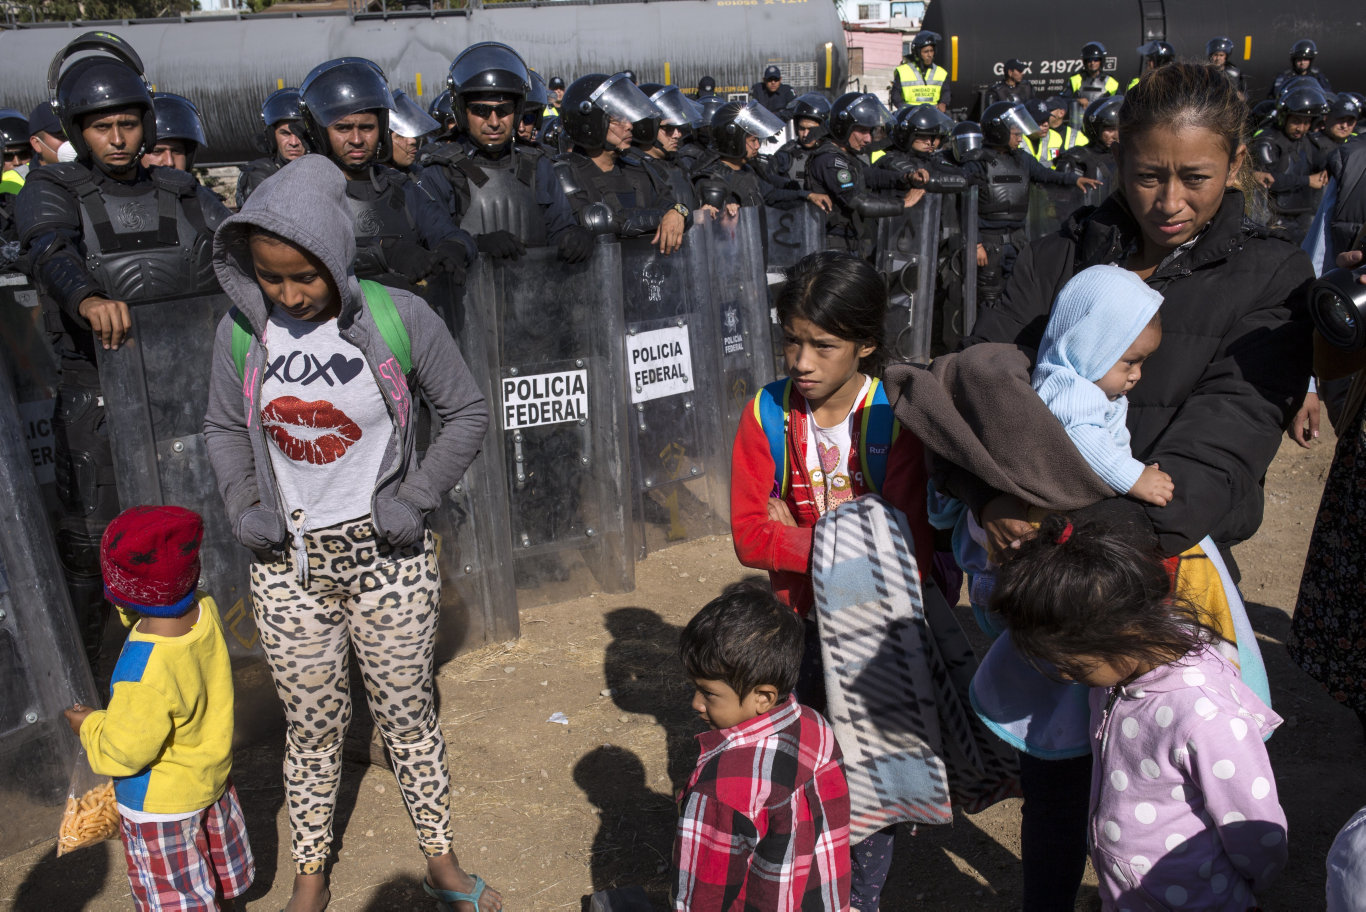 Migrants stand near Mexican police at the Mexico-U.S. border in Tijuana, Mexico as they try to reach the US. The mayor of Tijuana has declared a humanitarian crisis in his border city and says that he has asked the United Nations for aid to deal with about 5000 Central American migrants who have arrived in the city.